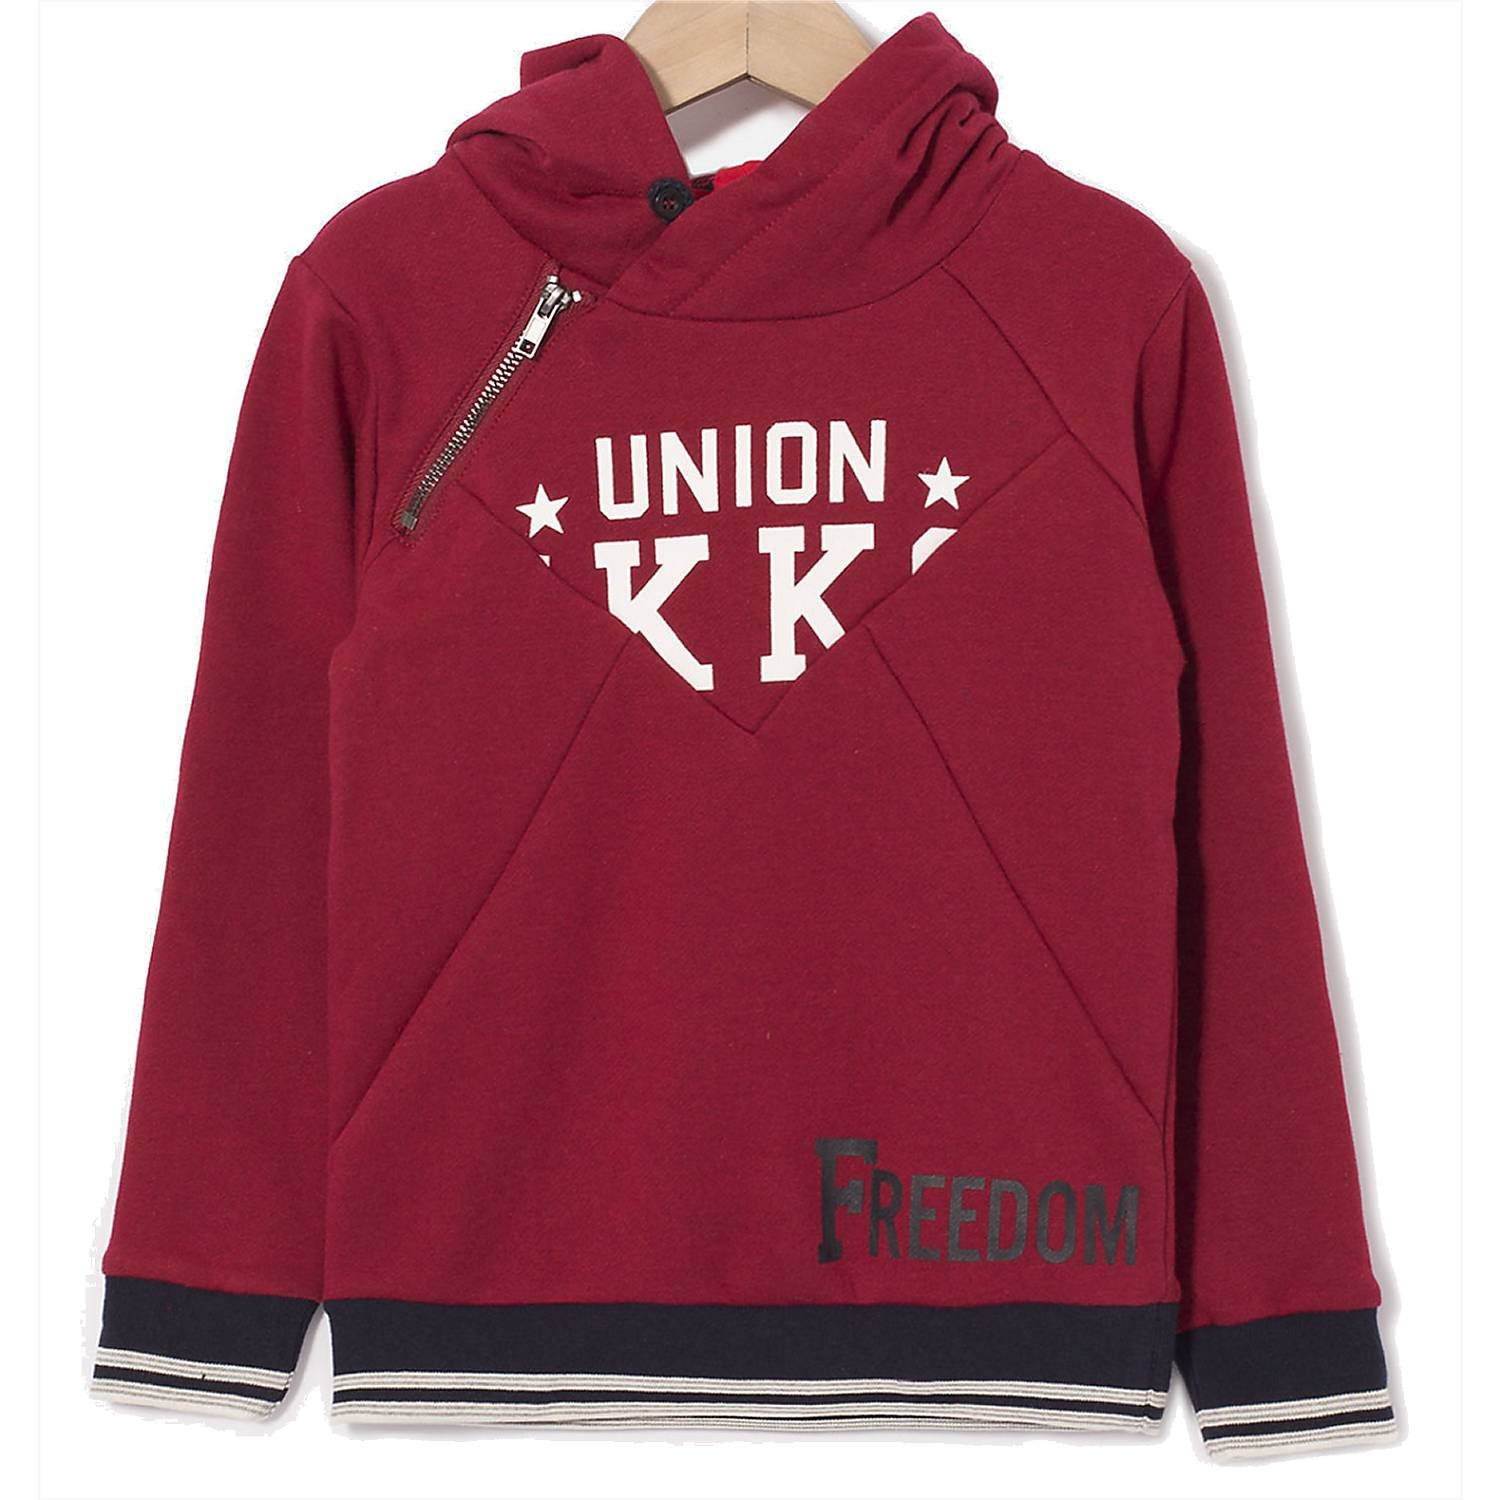 IKKS Kids Sweatshirt